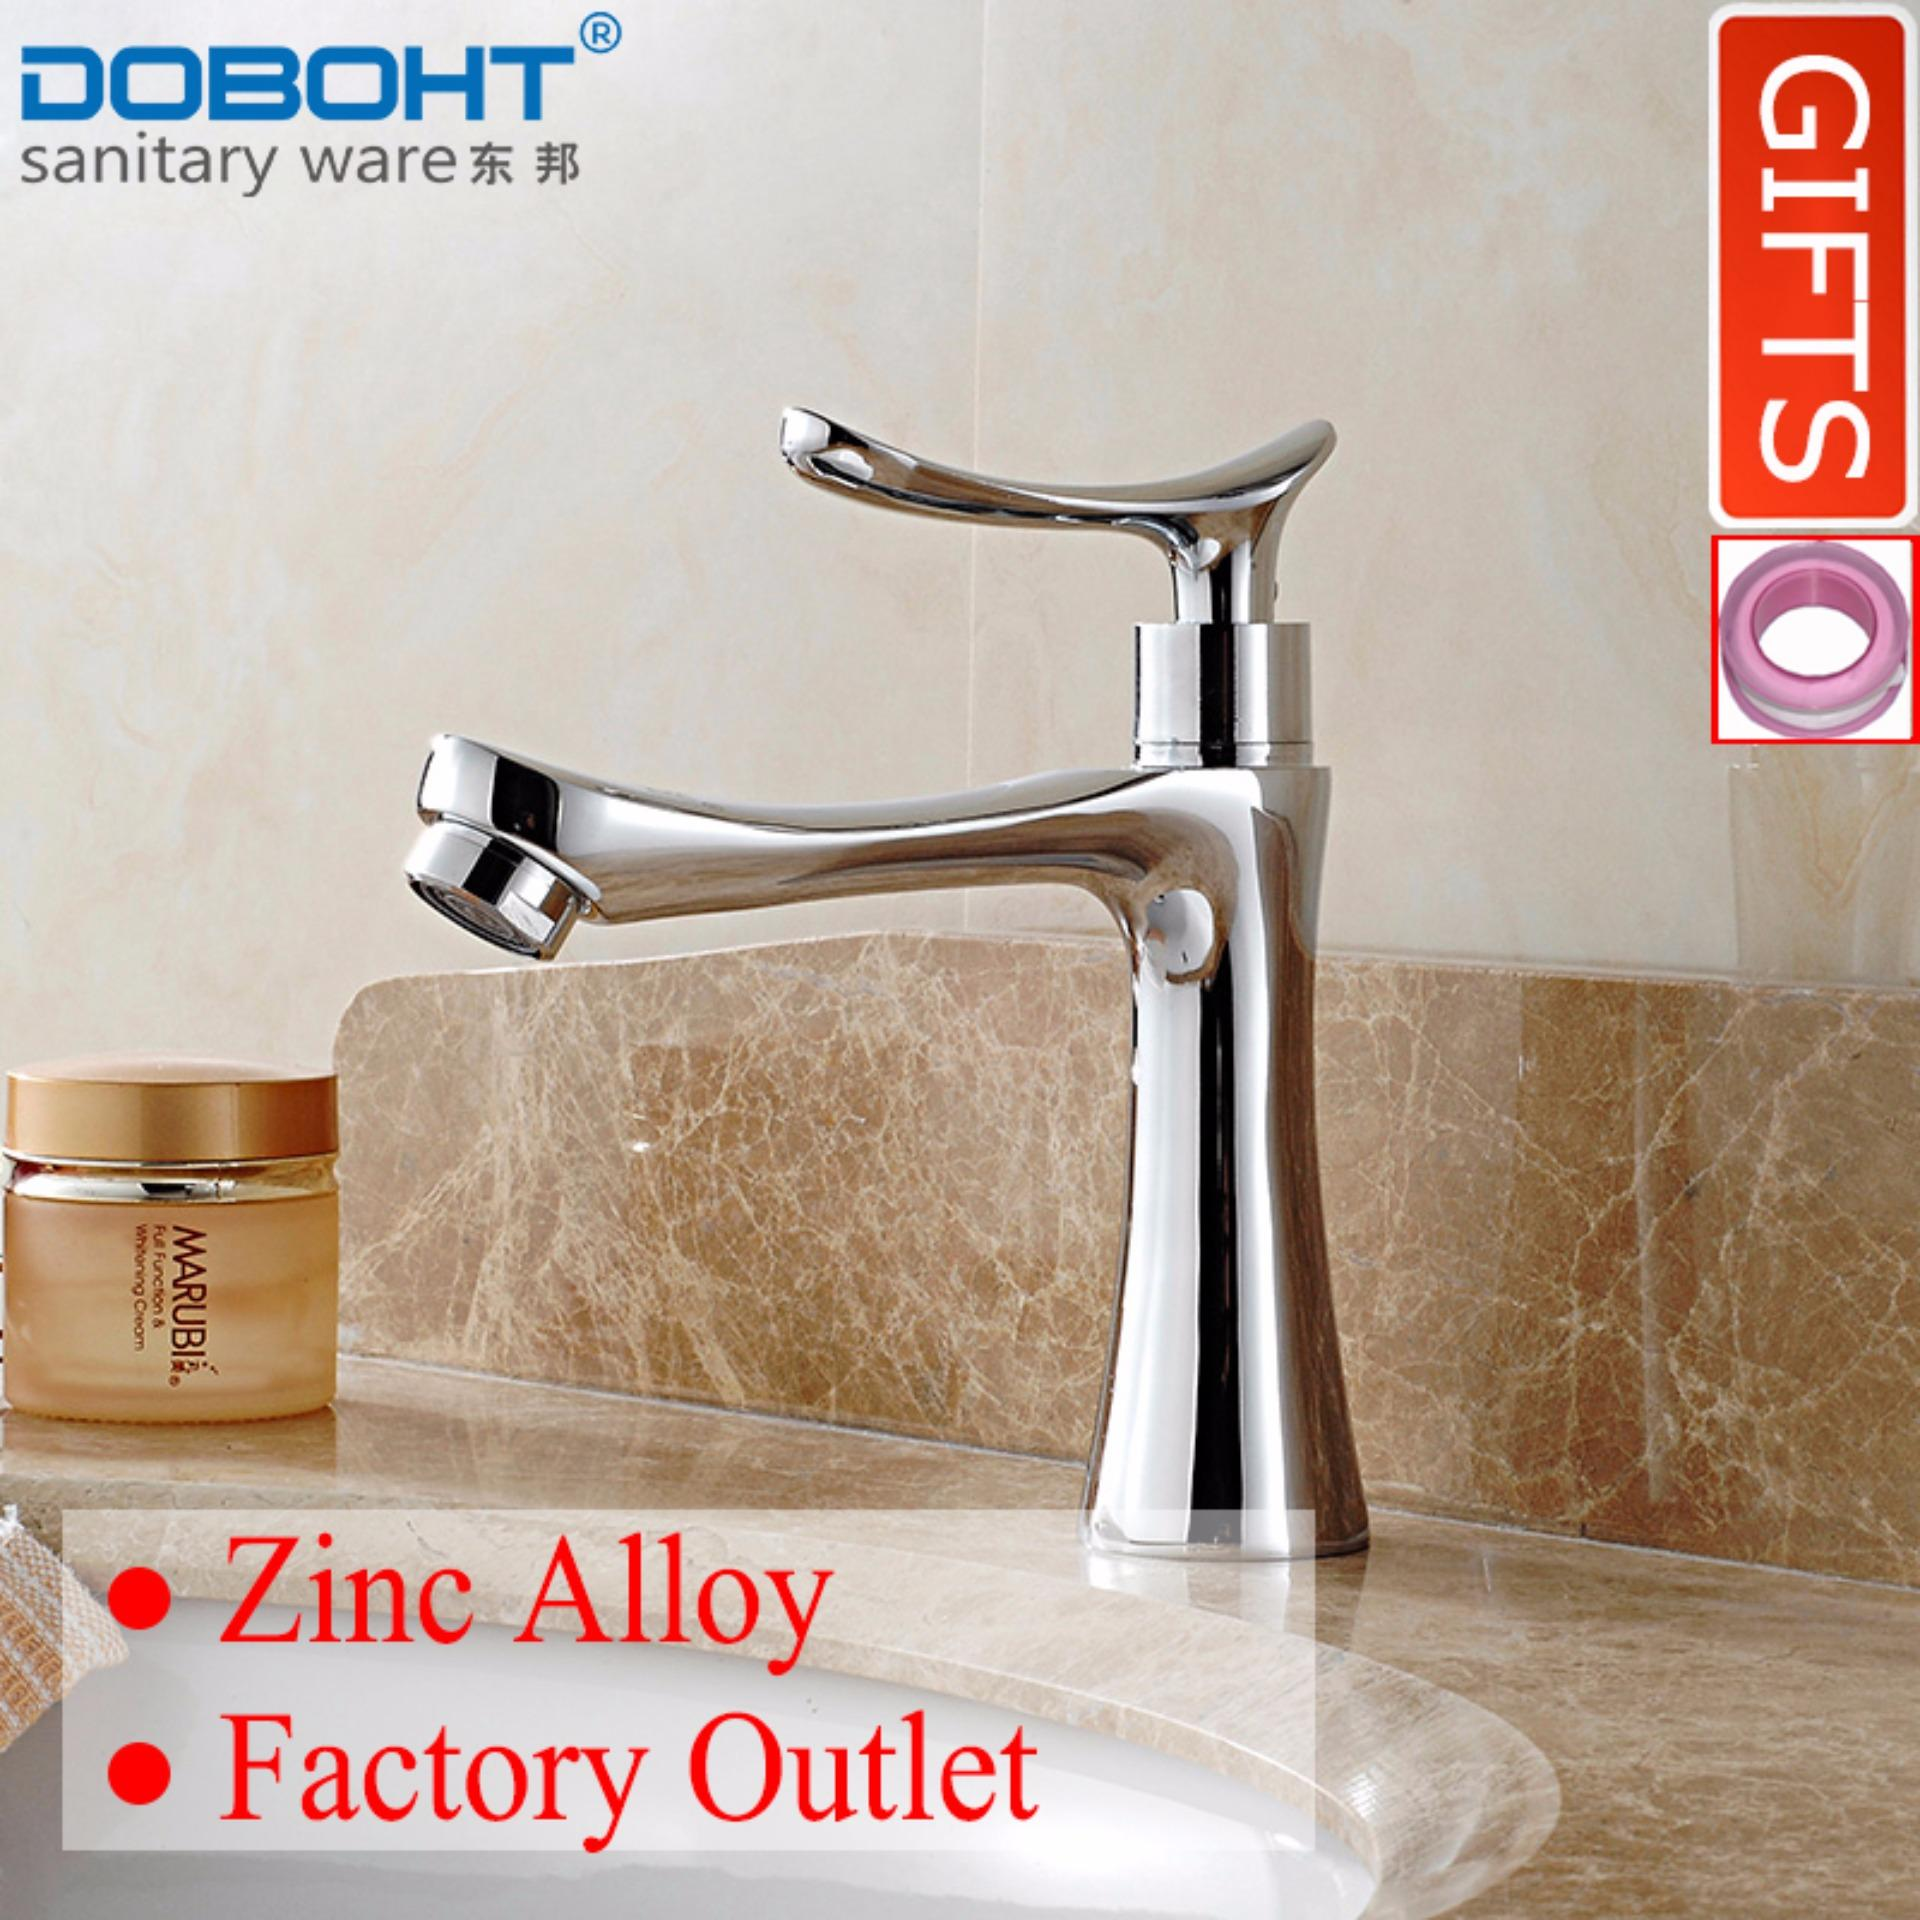 Doboht Zinc Alloy Bathroom Sink Basin Single Cold Tap Faucet Chrome Export On China